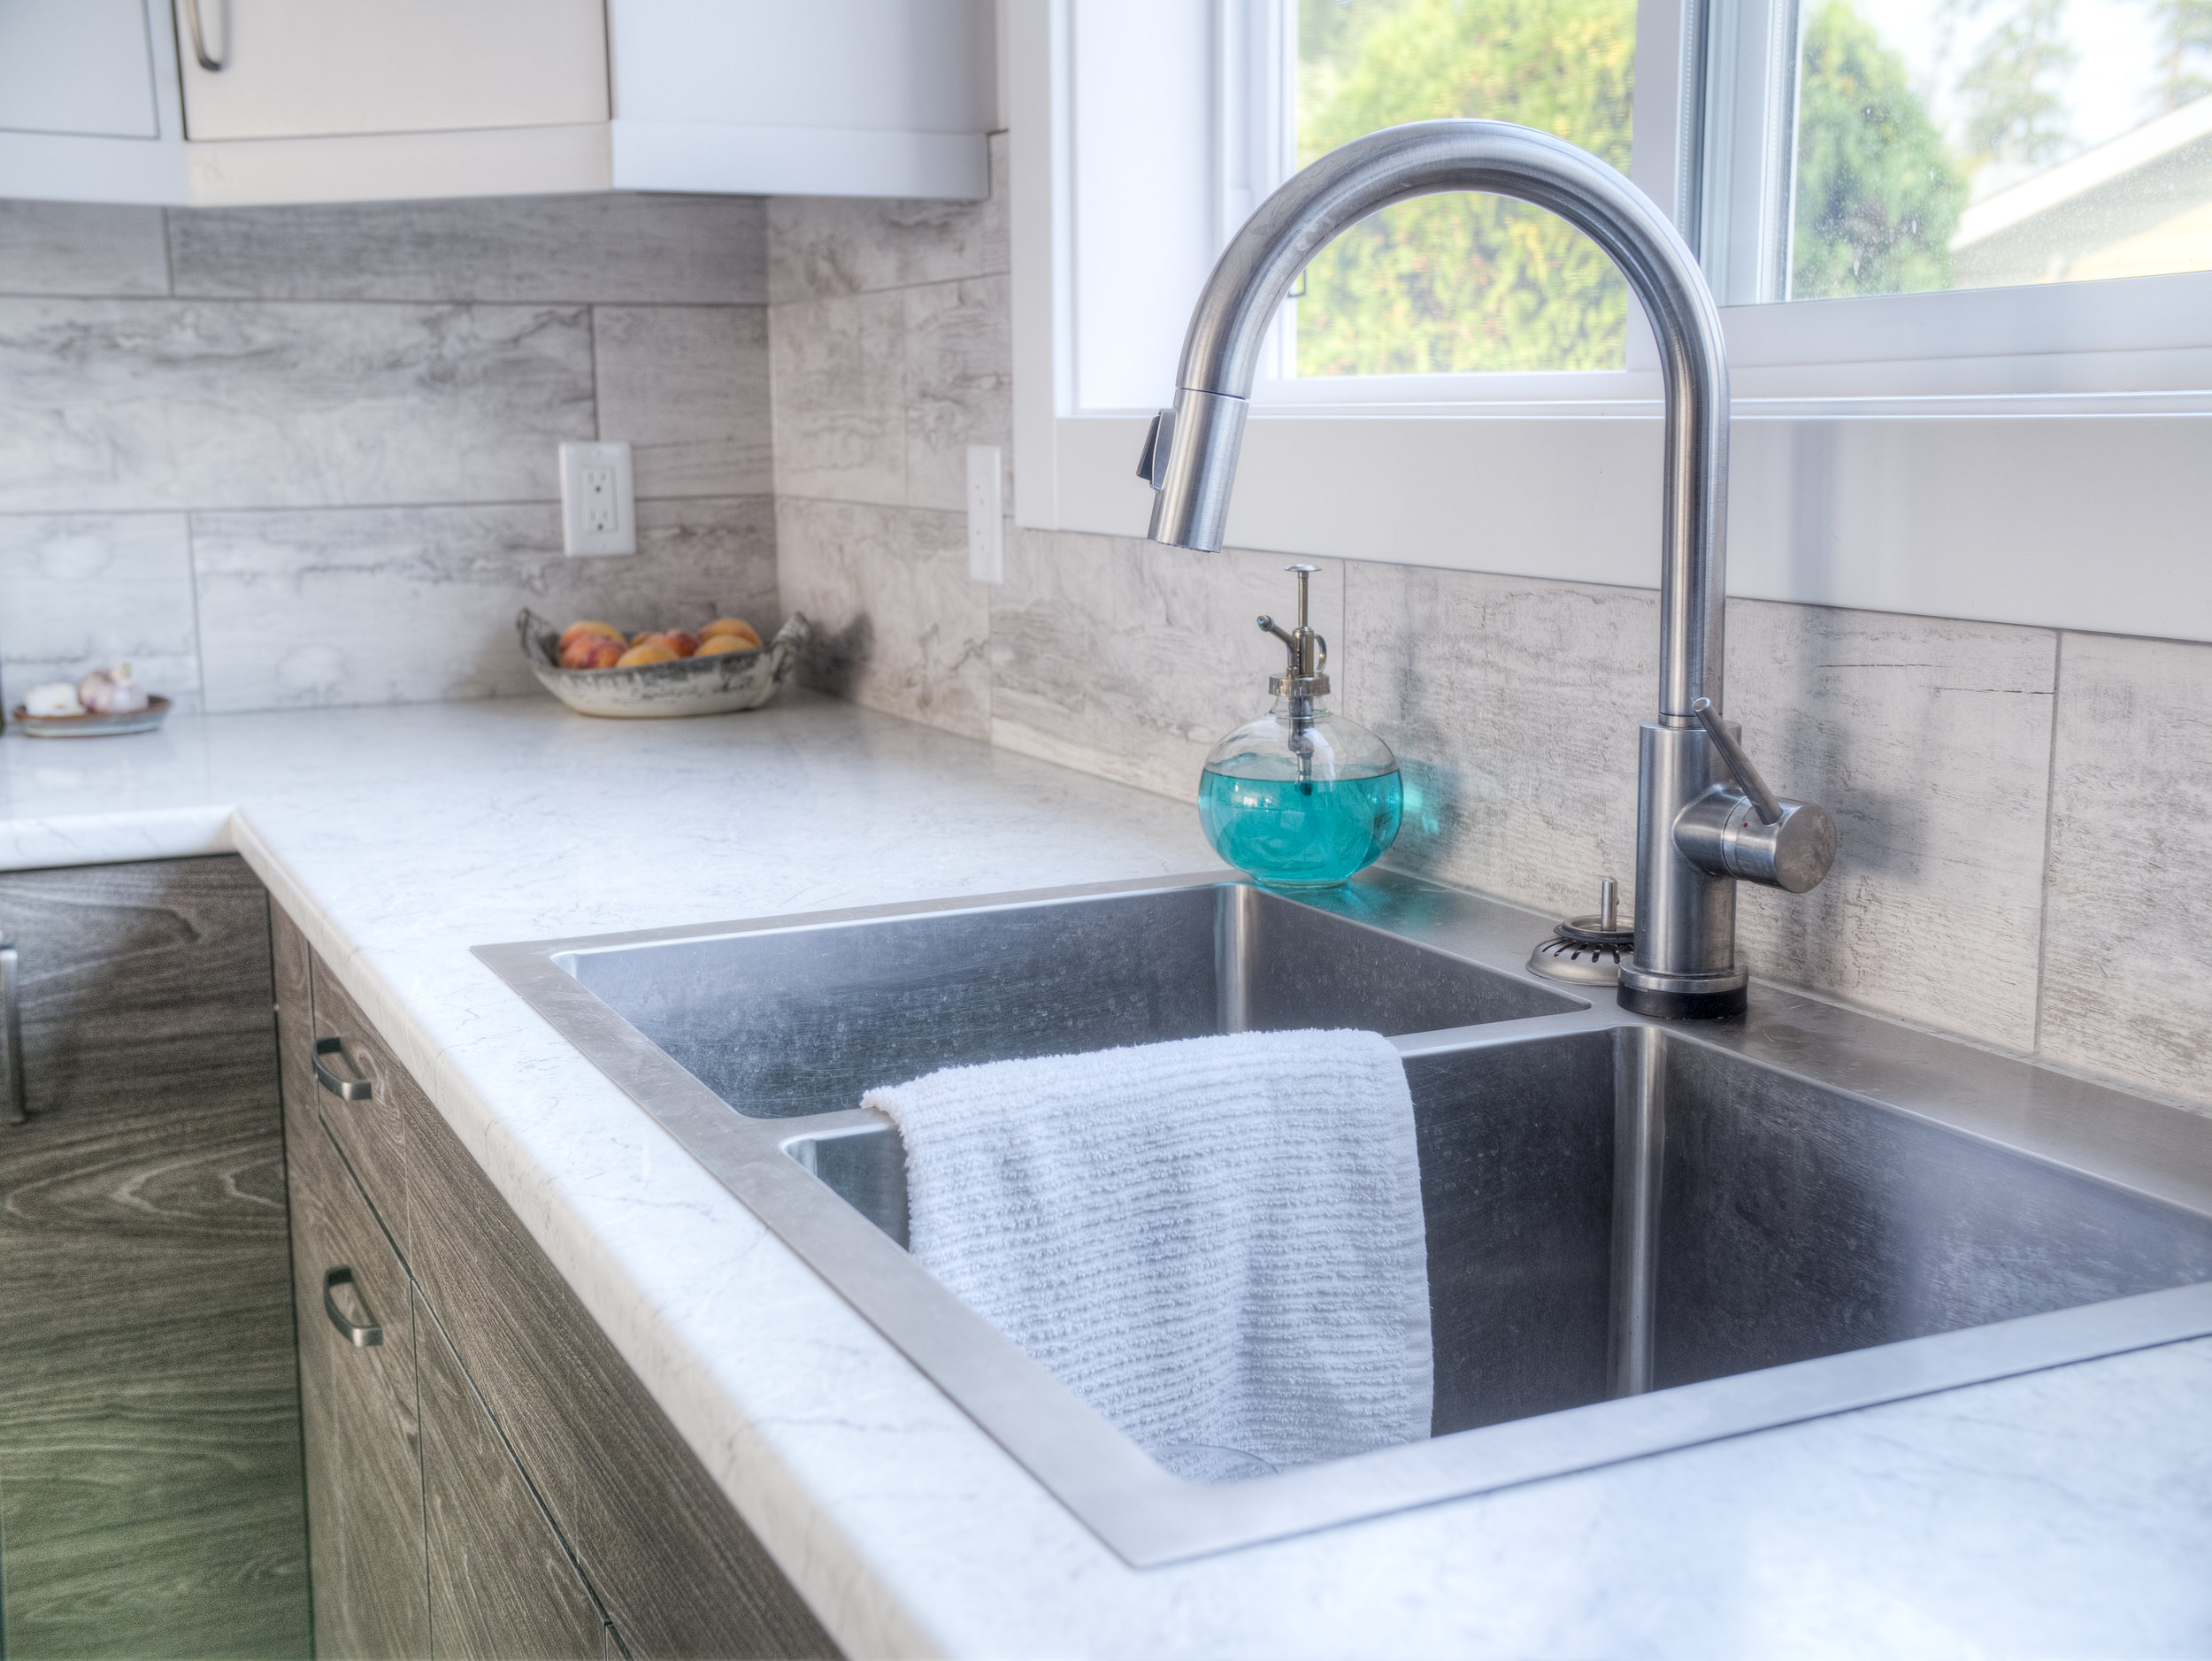 Kitchen SInk, Faucet and Fixtures